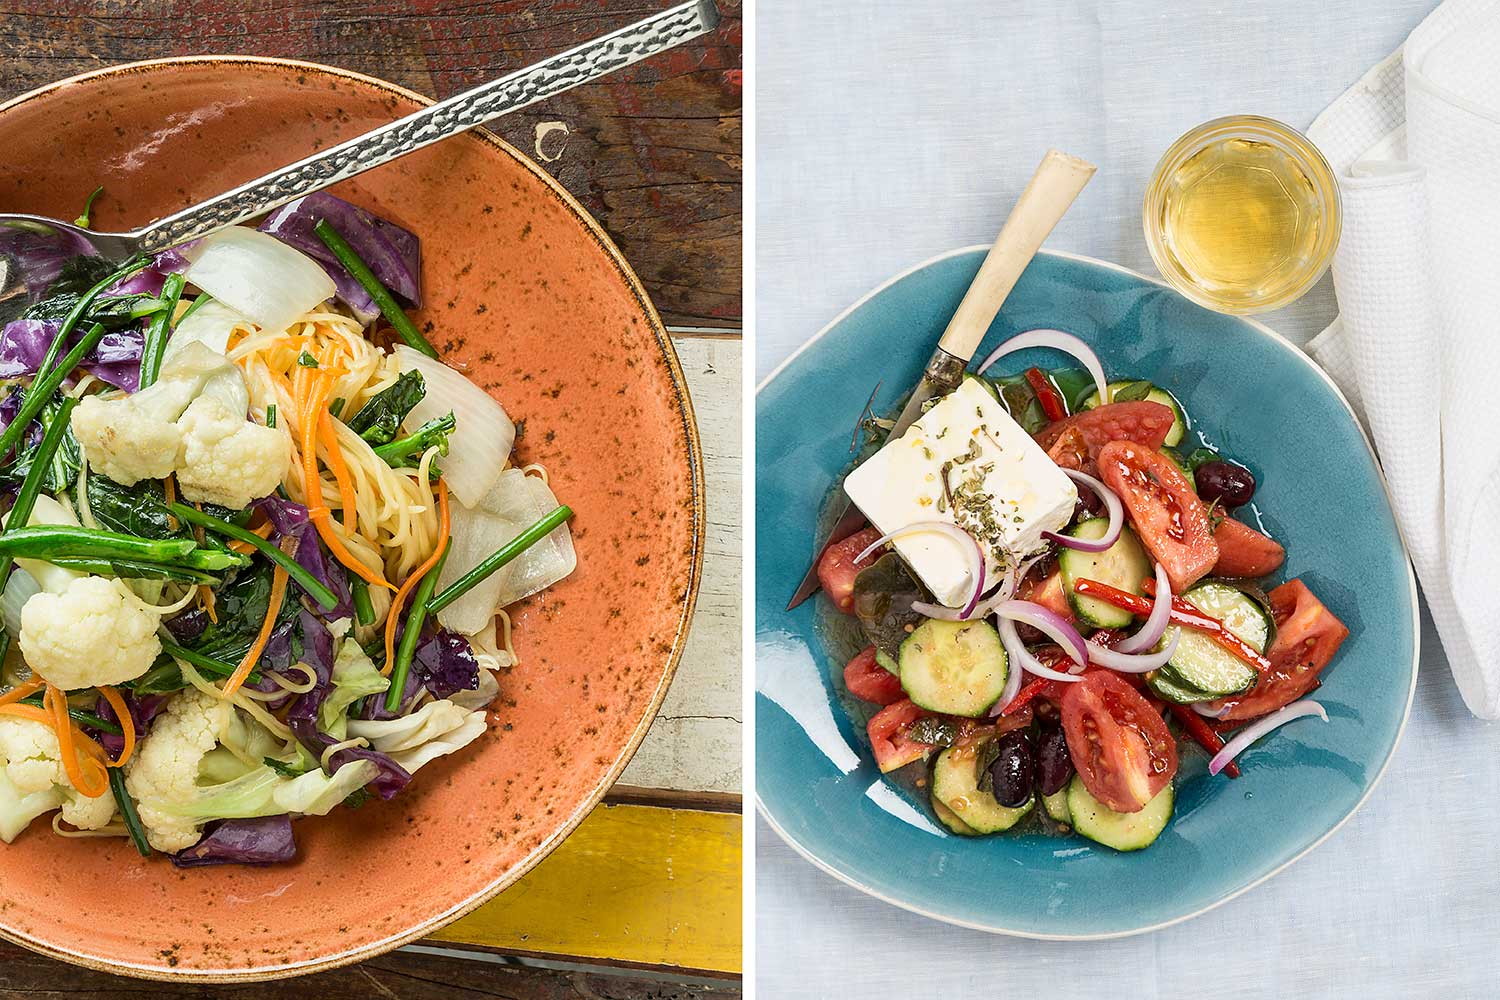 Vietnamese vegetable bowl and greek salad